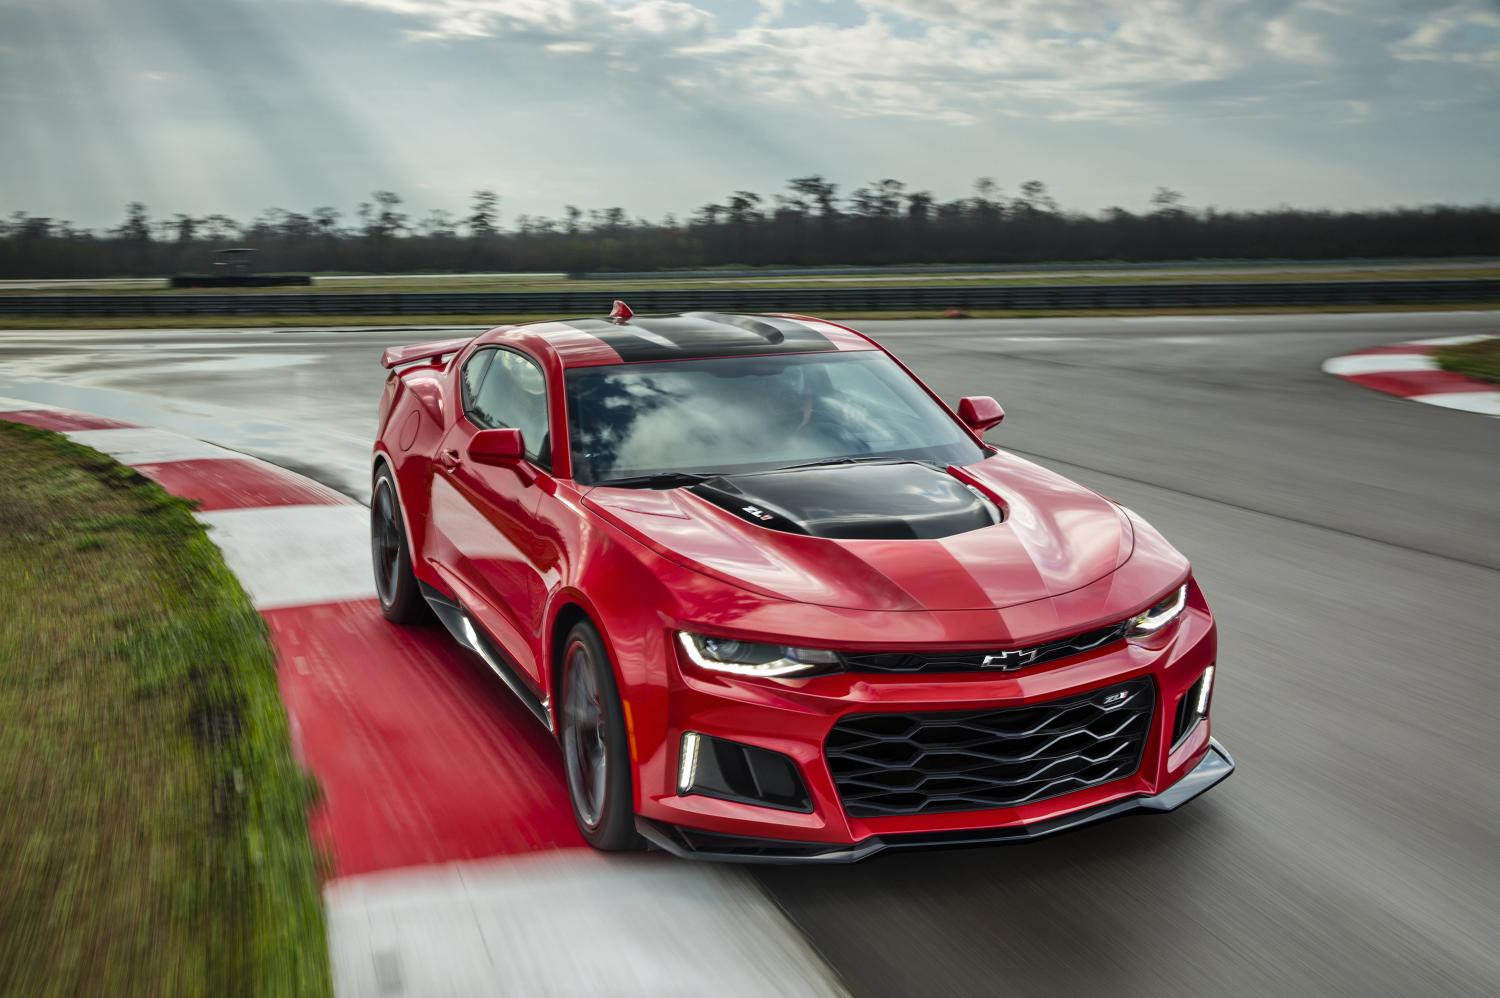 The Chevrolet Camaro ZL1 Is Faster Than Some Supercars On The Nurburgring